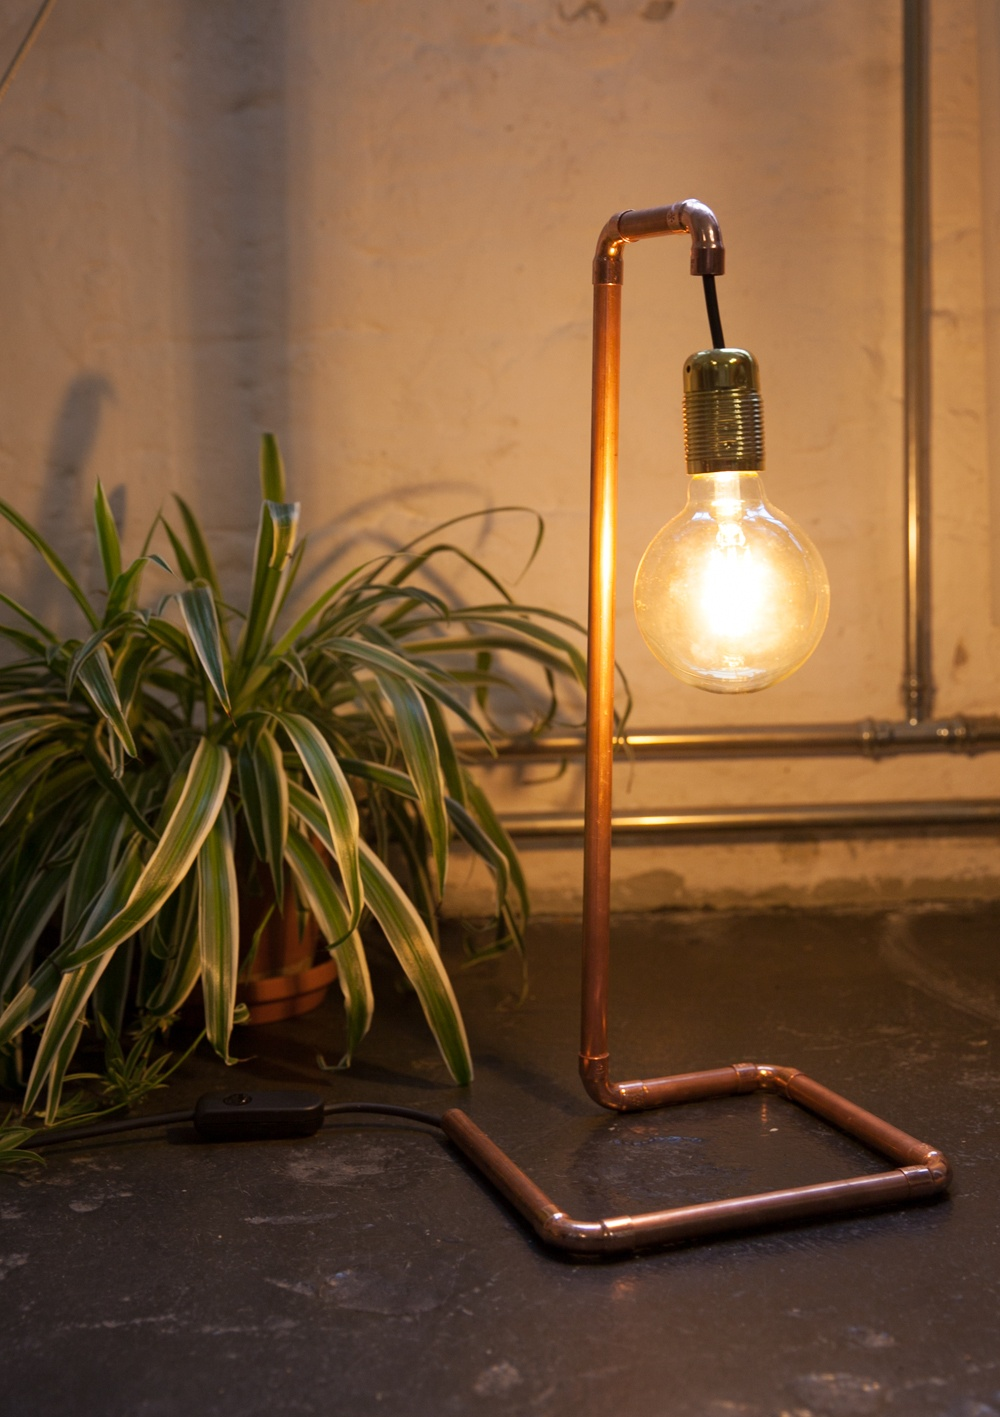 diy lampe im industriedesign